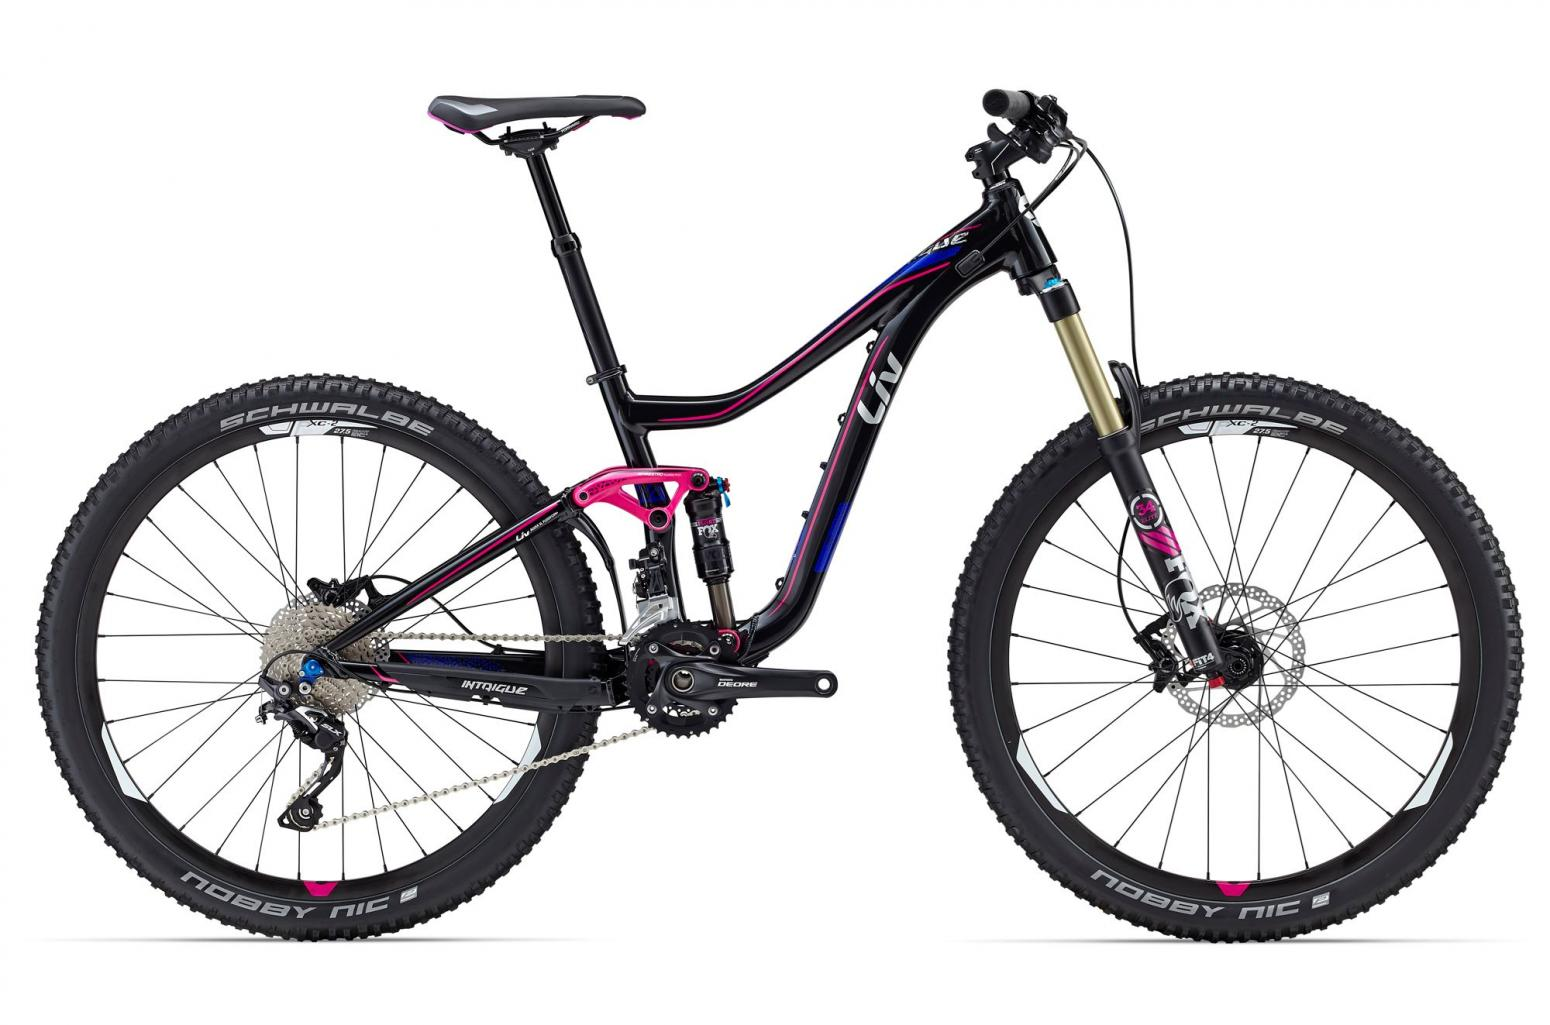 LIV / Giant MTB Women Allmountain/Trail Intrigue 27.5 1 2016